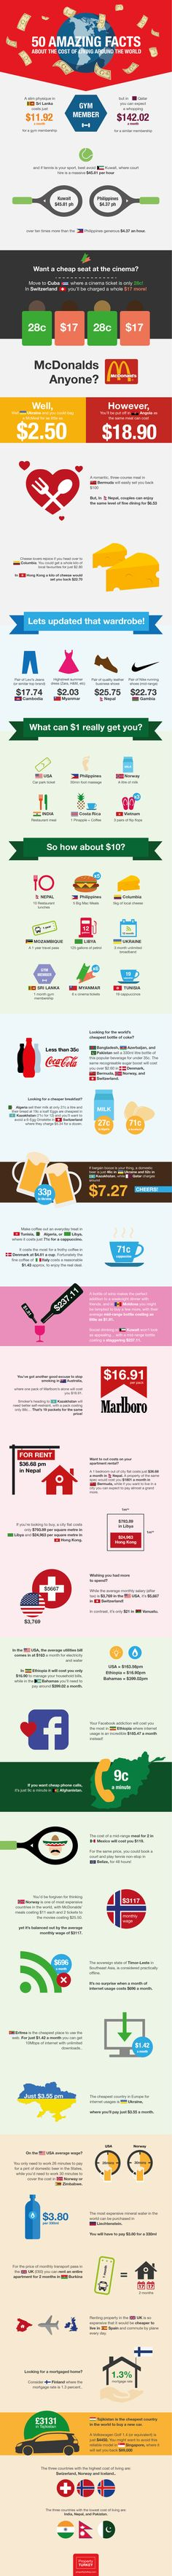 Interesting facts from around the world 2